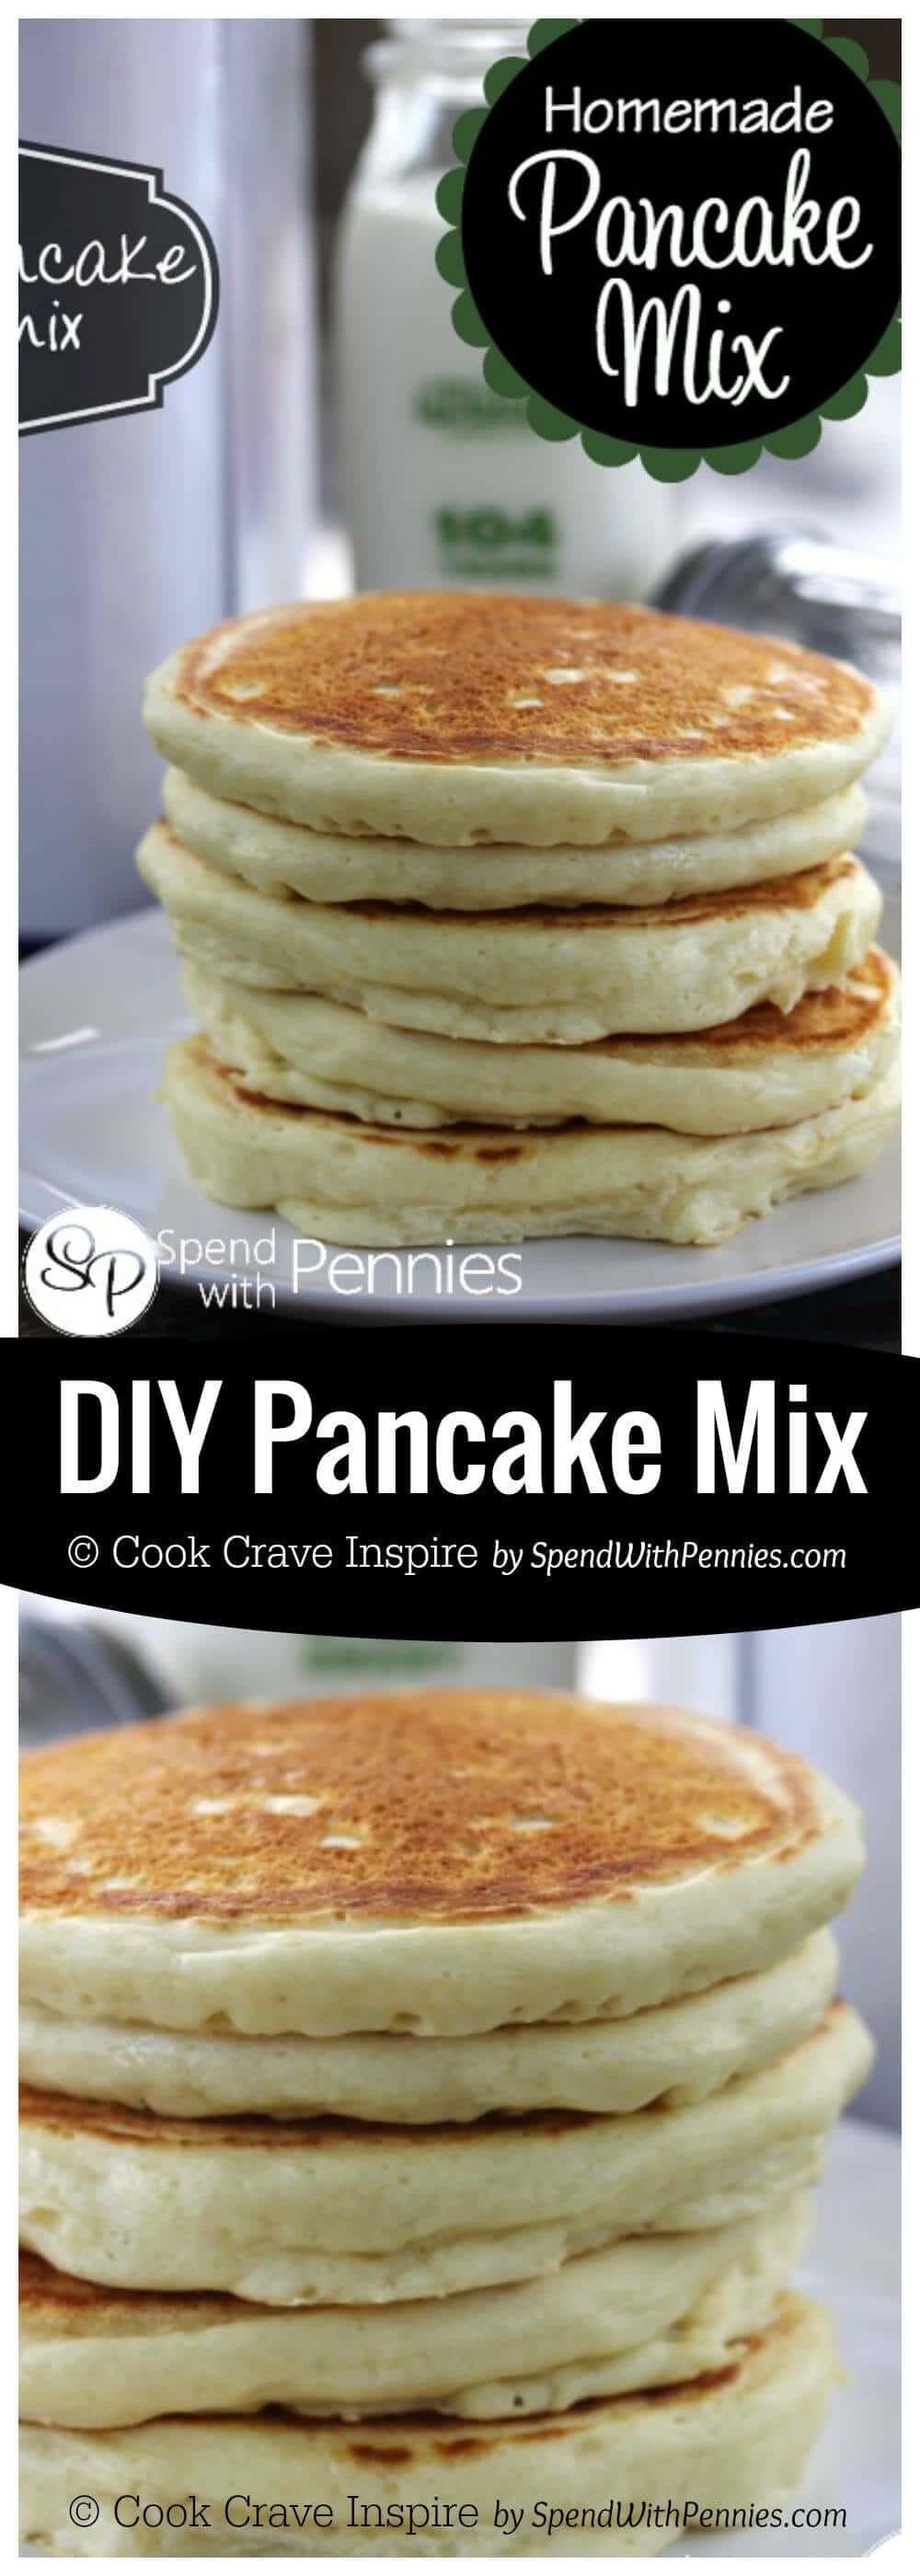 Diy Pancake Mix Recipe Spend Pennies